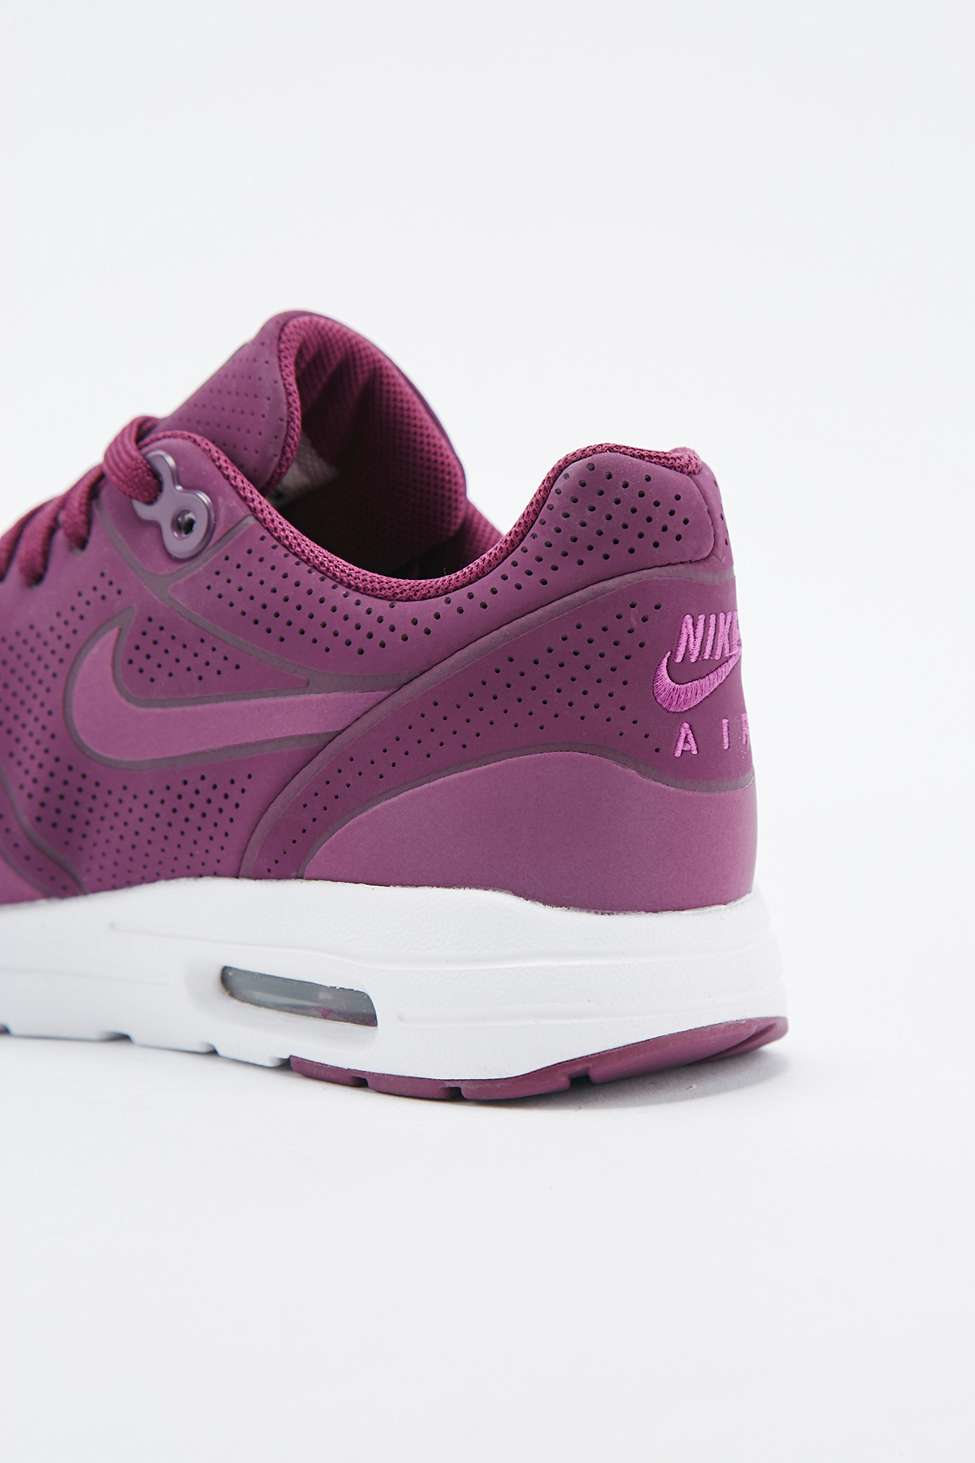 nike air max 1 ultra moire womens purple. Black Bedroom Furniture Sets. Home Design Ideas